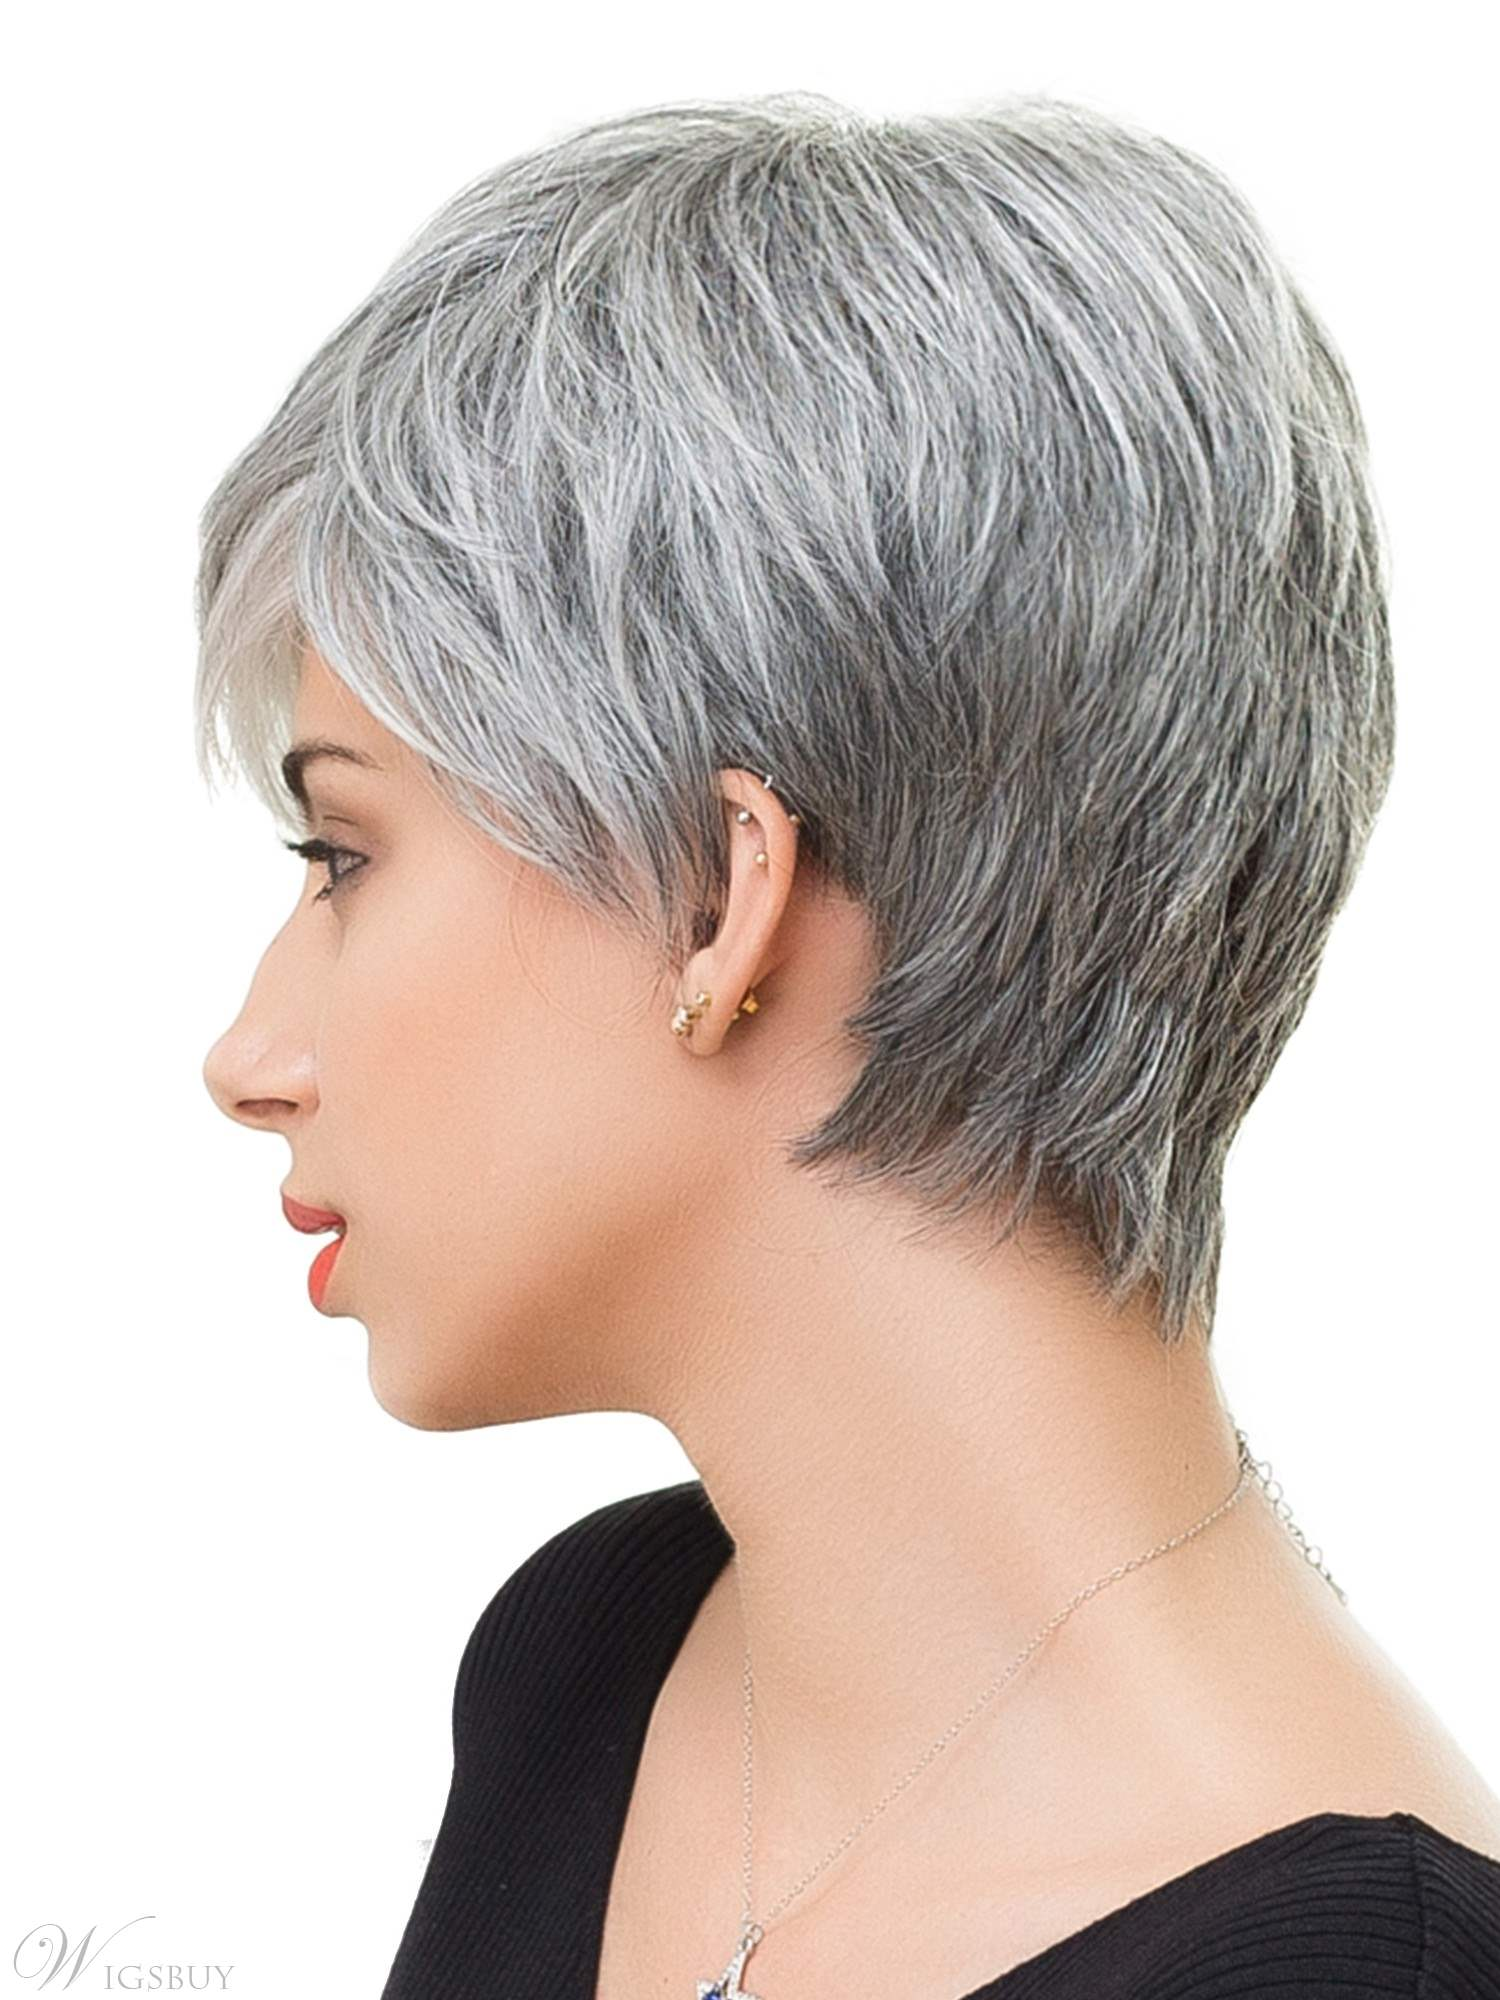 Salt and Pepper Short Straight Capless Wigs with Bangs Human Hair for Older Women